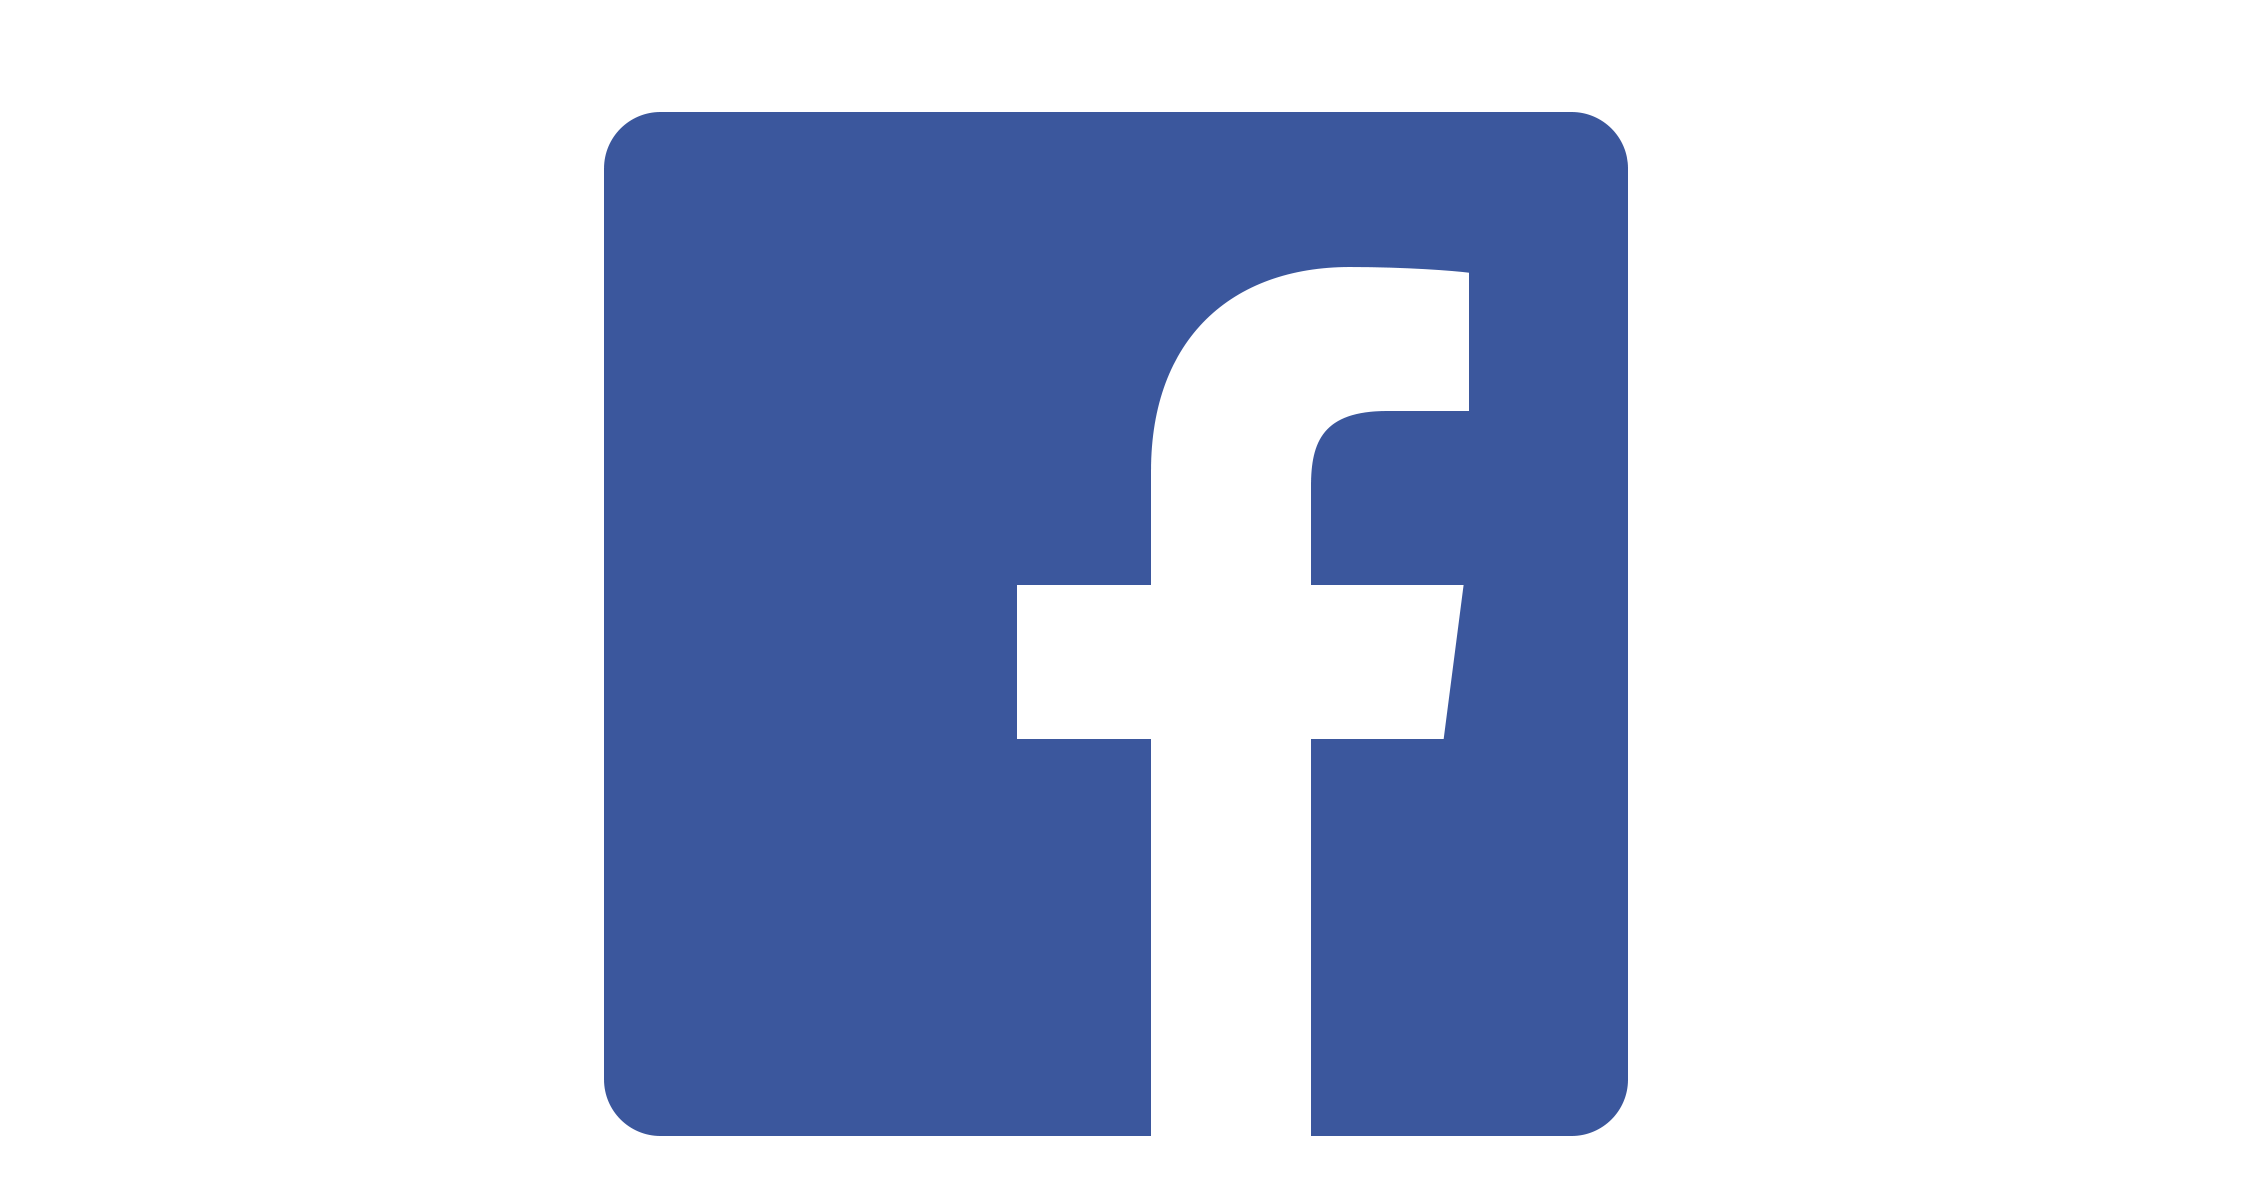 FB-f-Logo__blue_1024 -WITH FRAMING.png